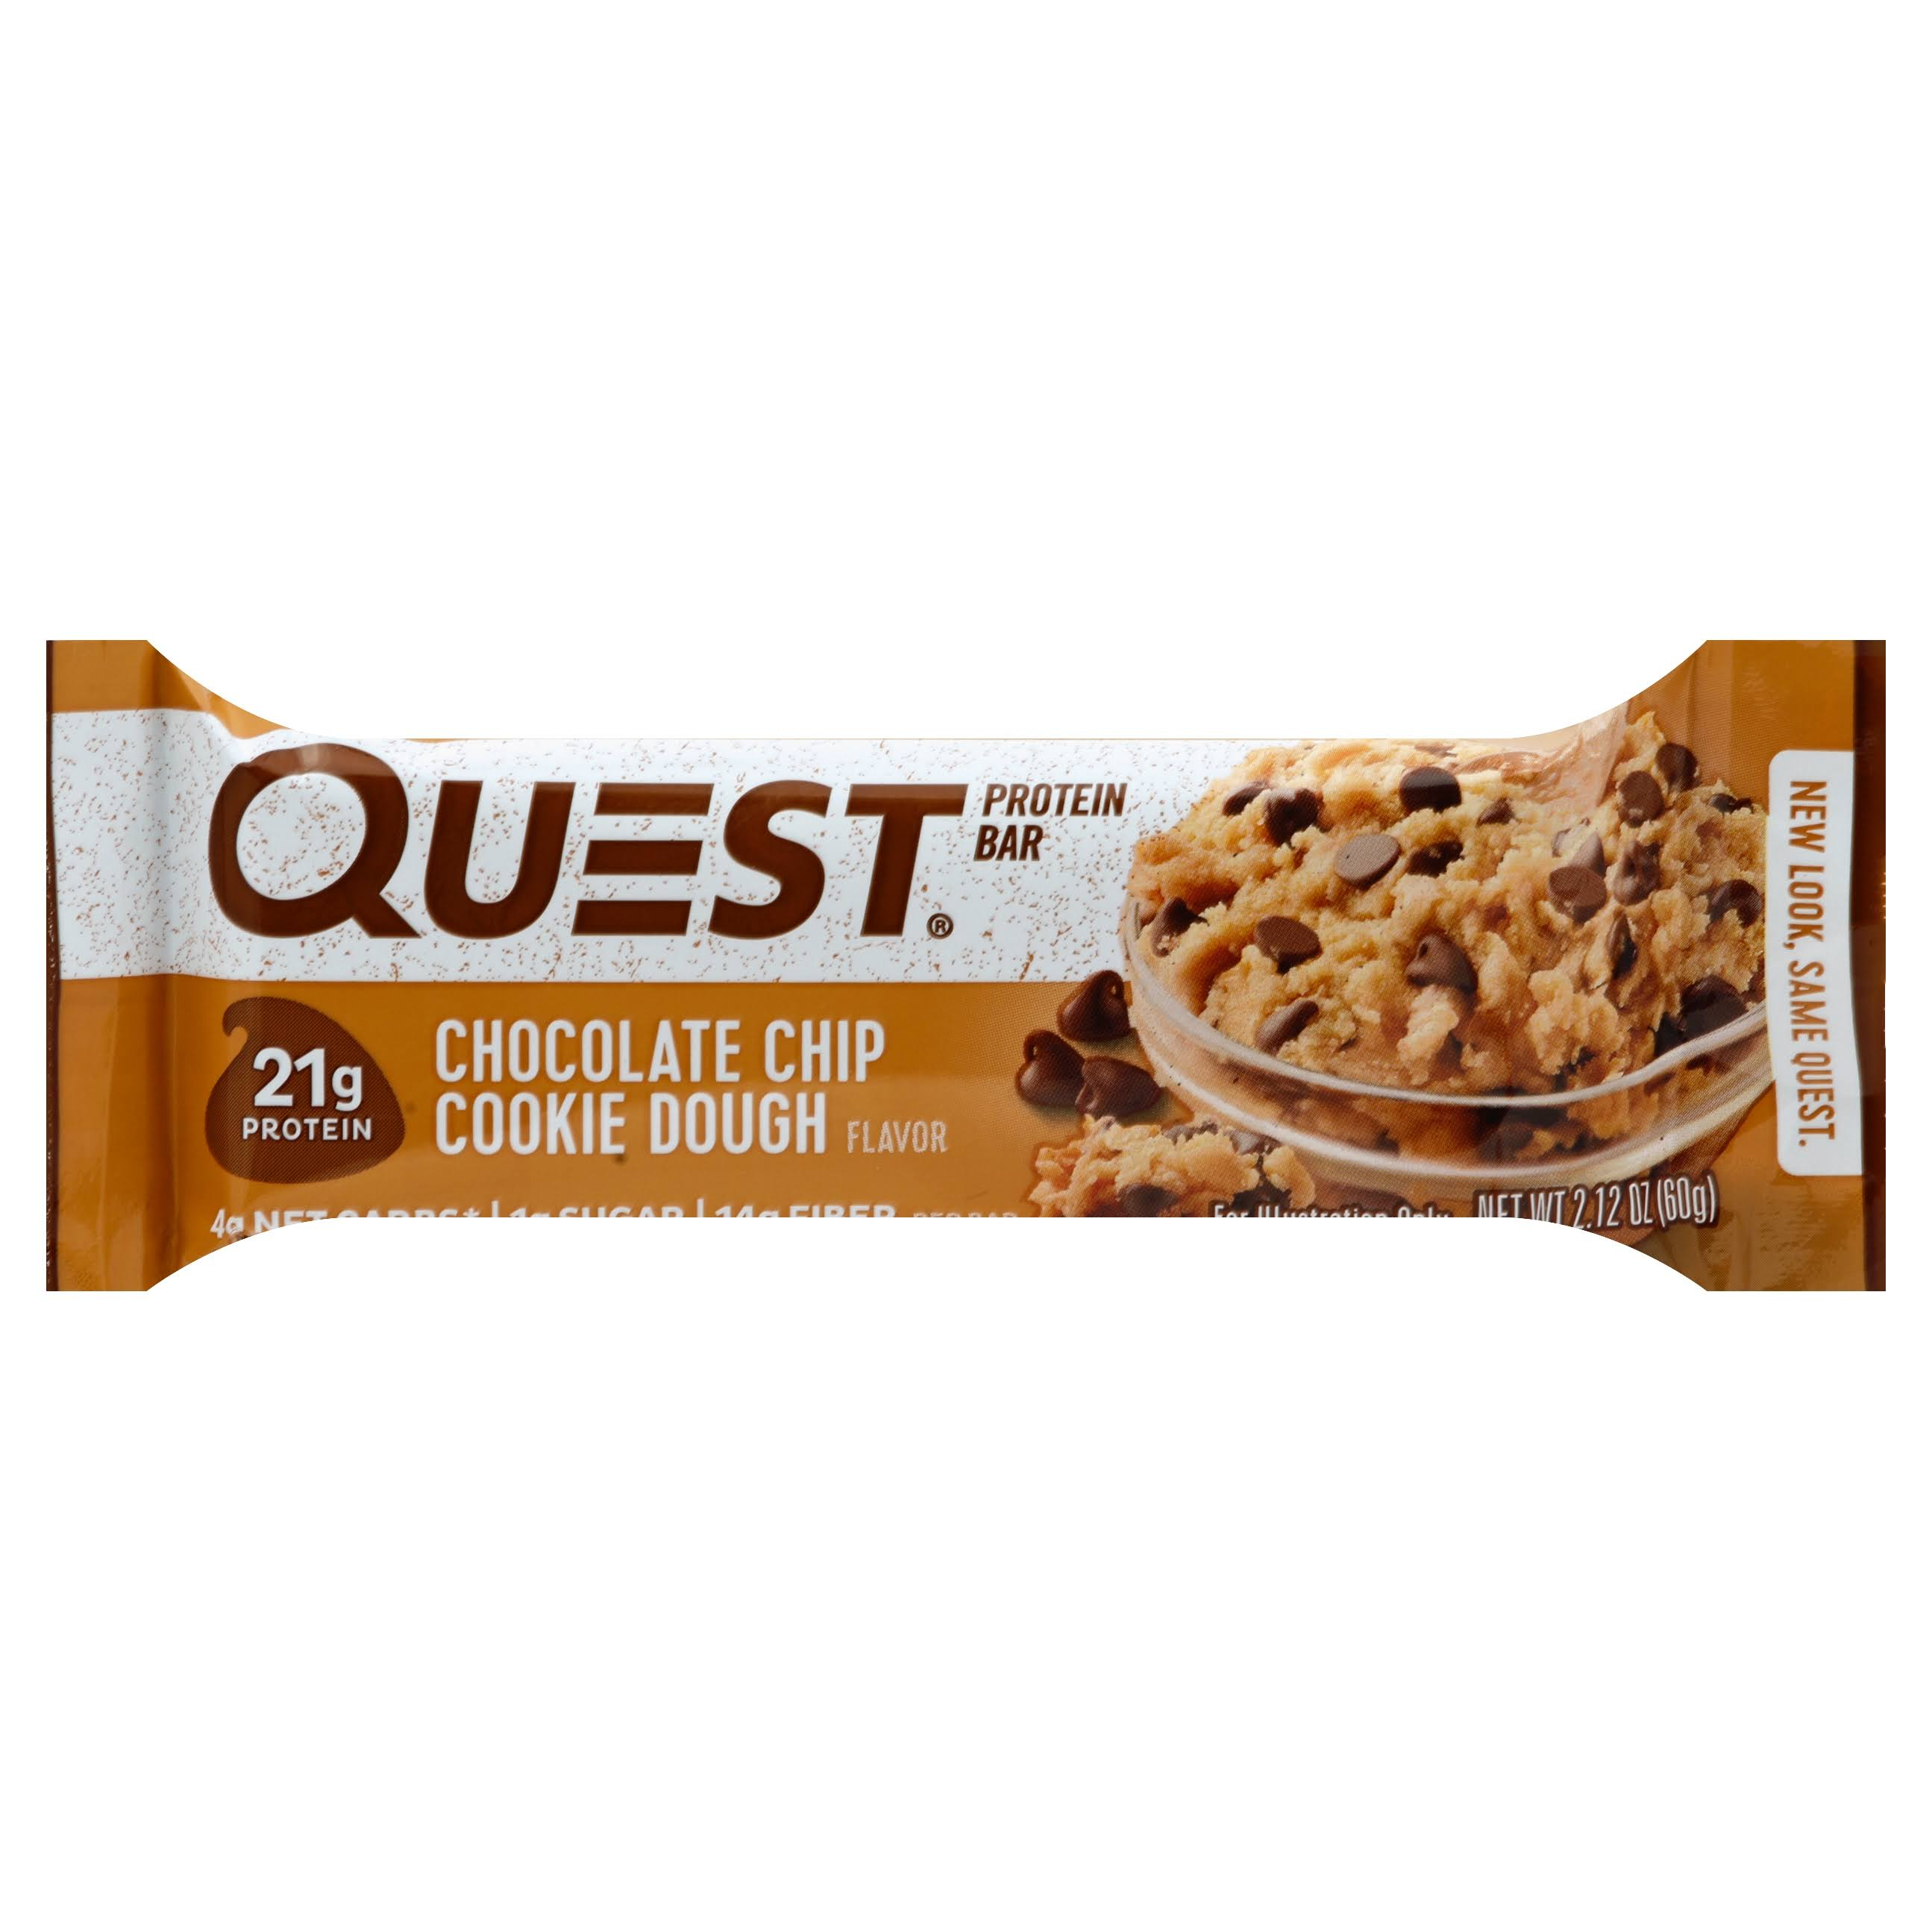 QuestBar Protein Bar - Chocolate Chip Cookie Dough